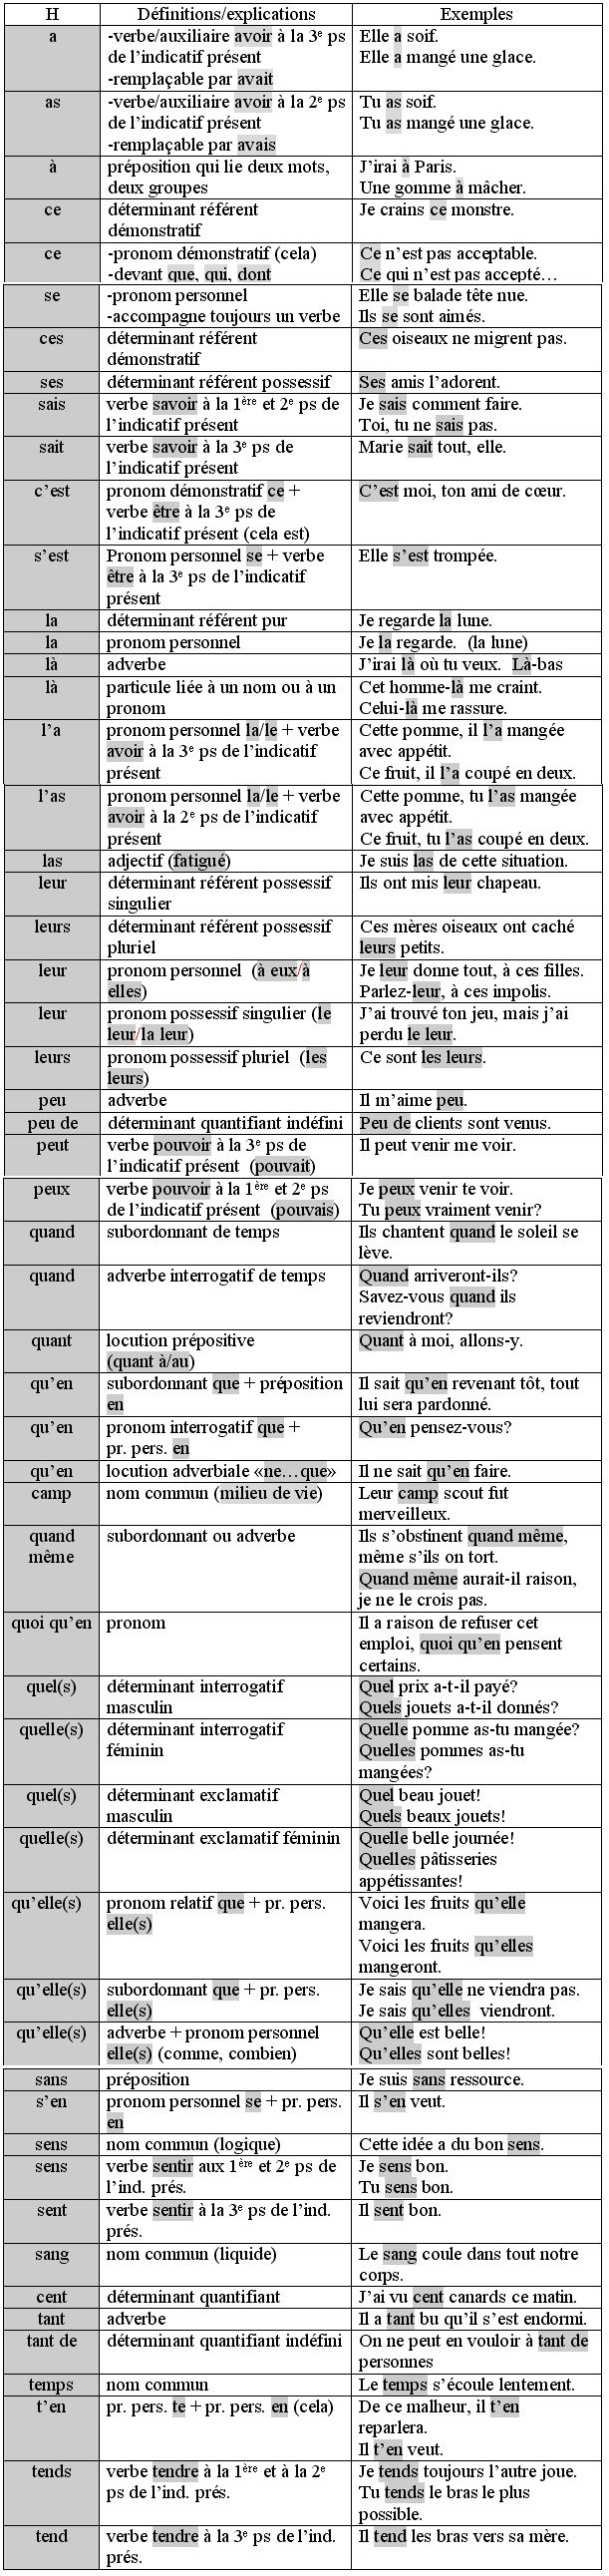 21 best France images on Pinterest | Education, French grammar and ...